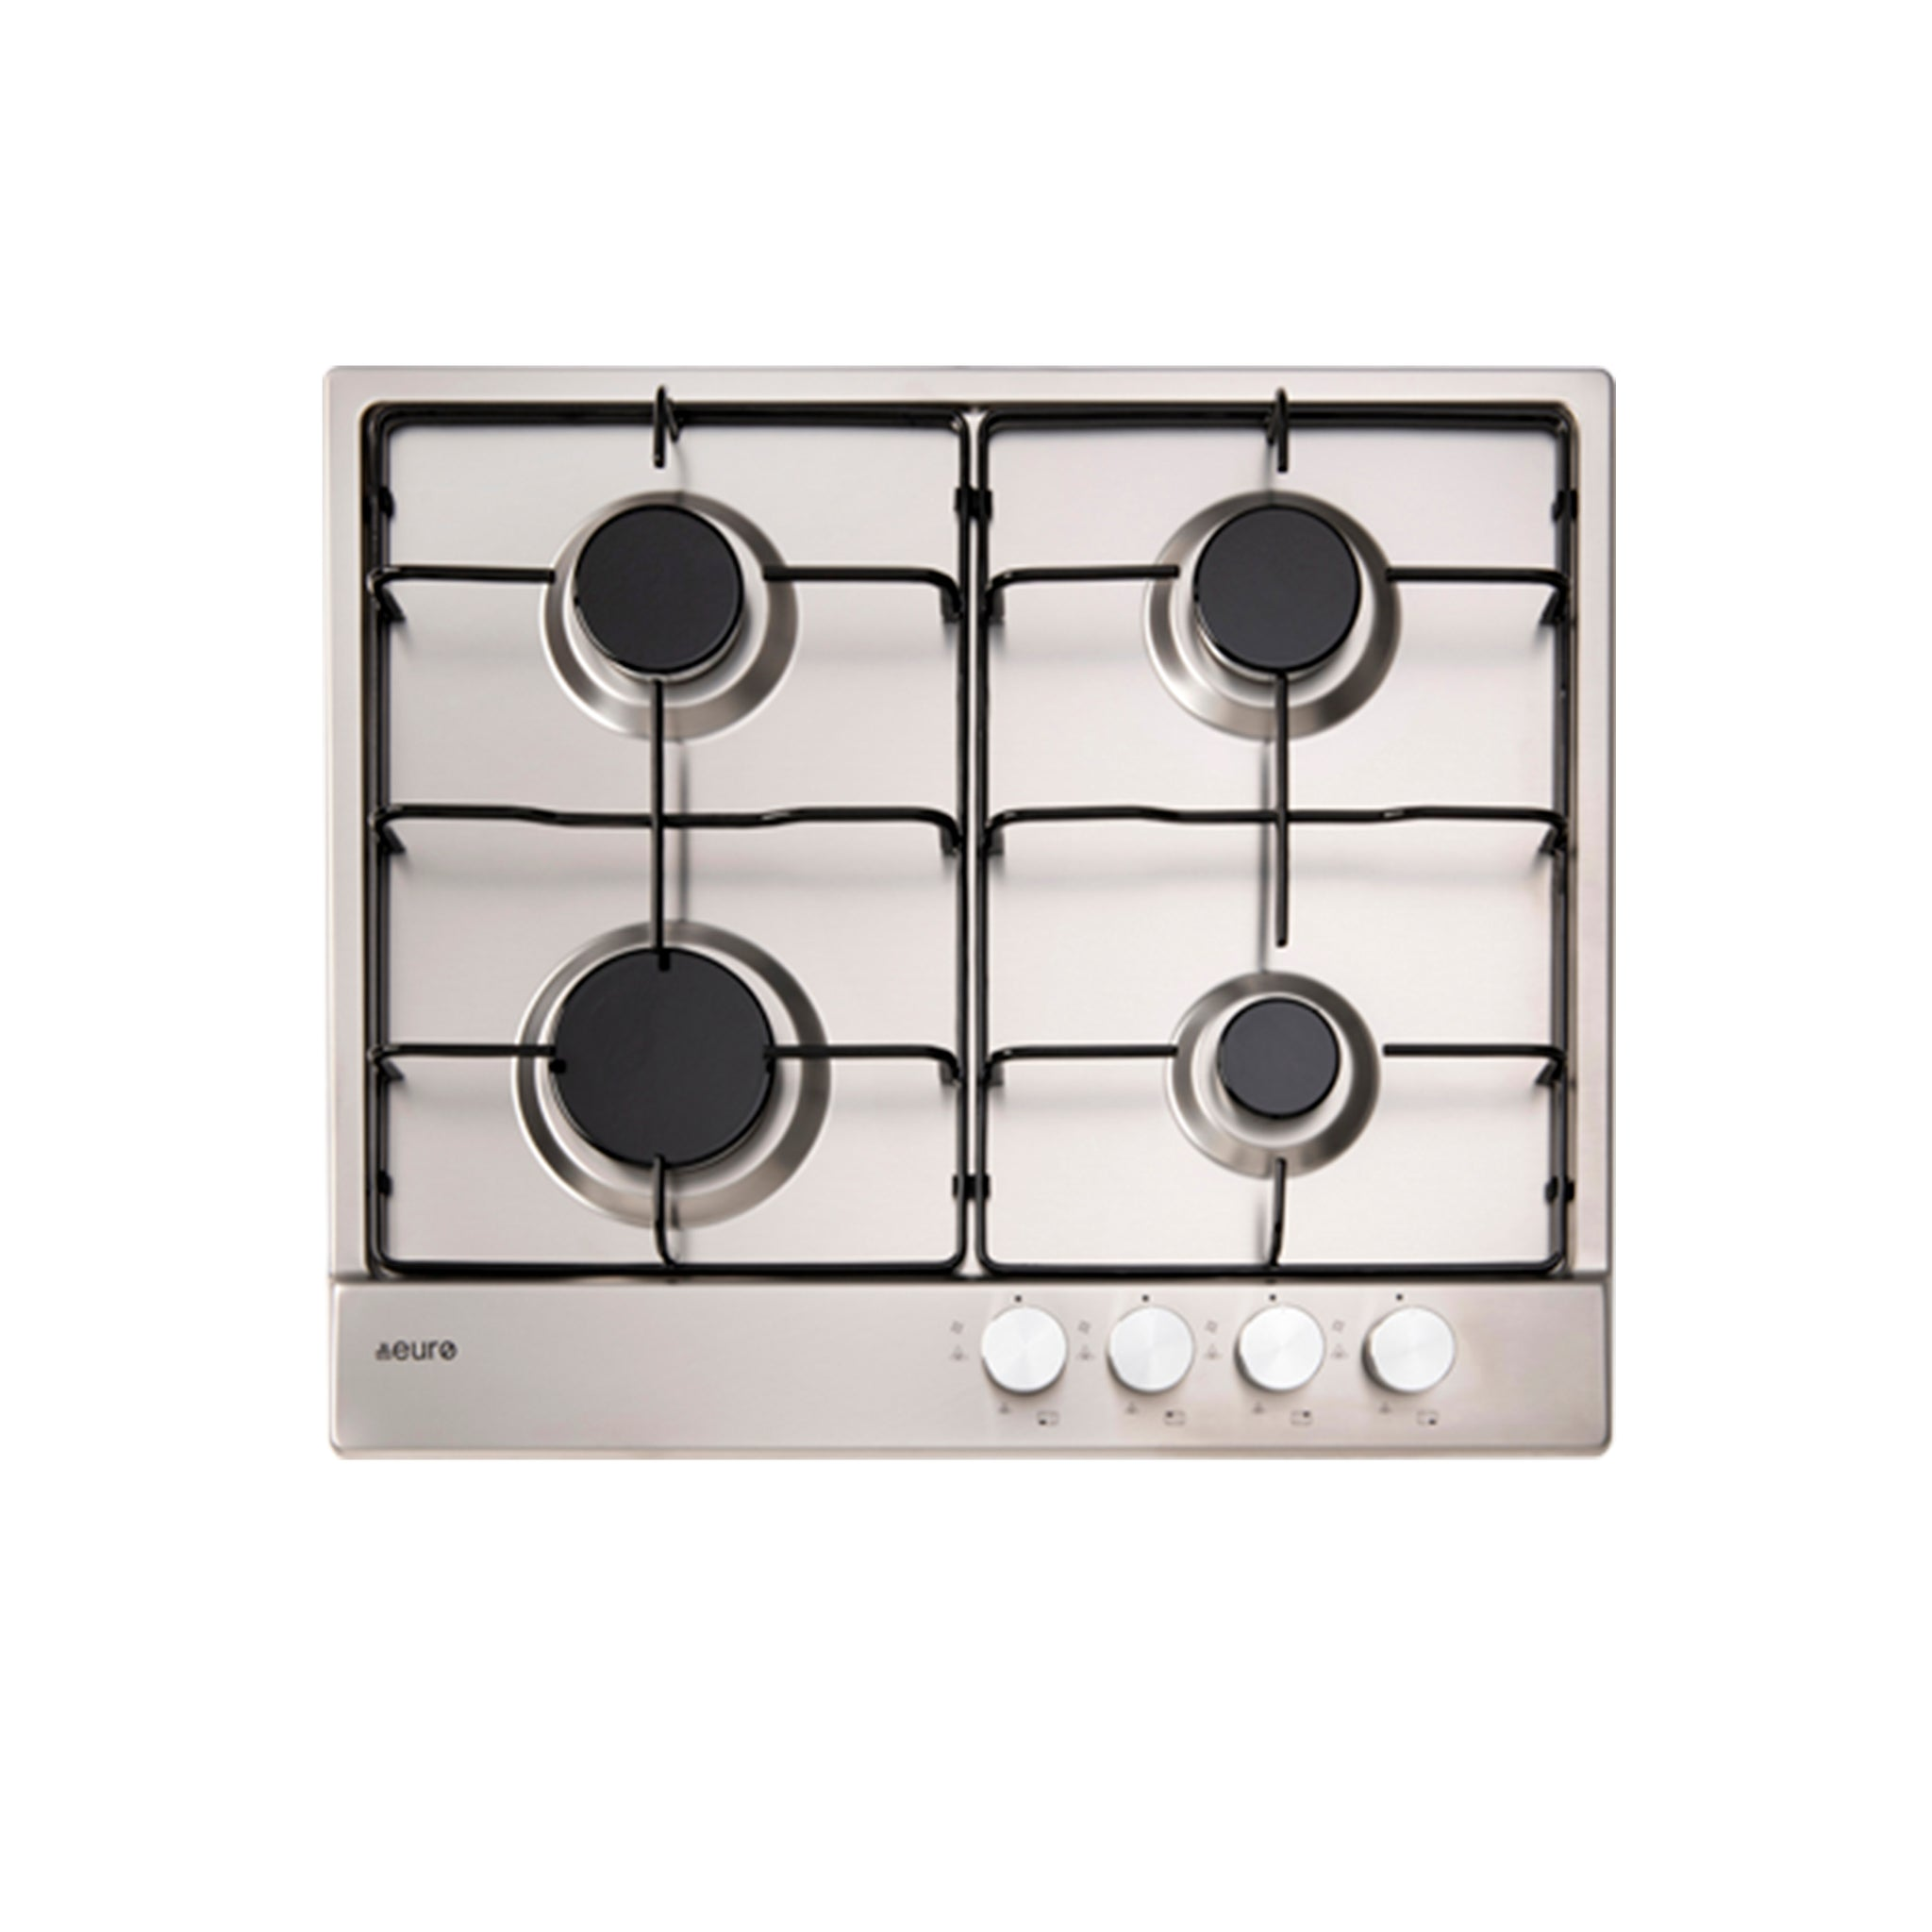 Euro ECT600GS 60cm Gas Cooktop